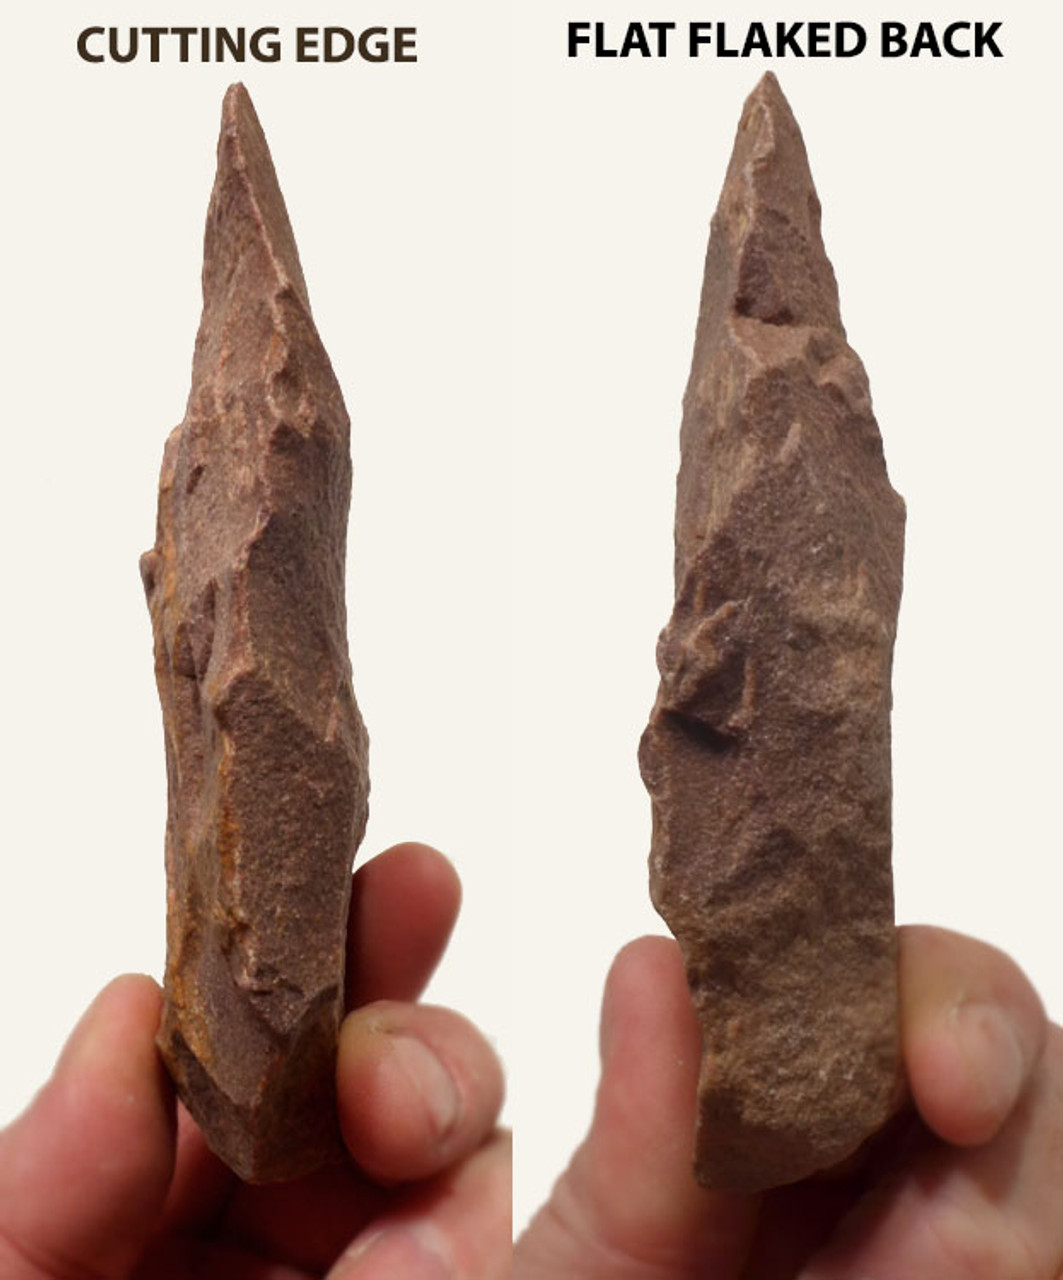 M289 - NORTH AFRICAN NEANDERTHAL MOUSTERIAN BACKED KNIFE WITH SUPERIOR EDGE KNAPPING